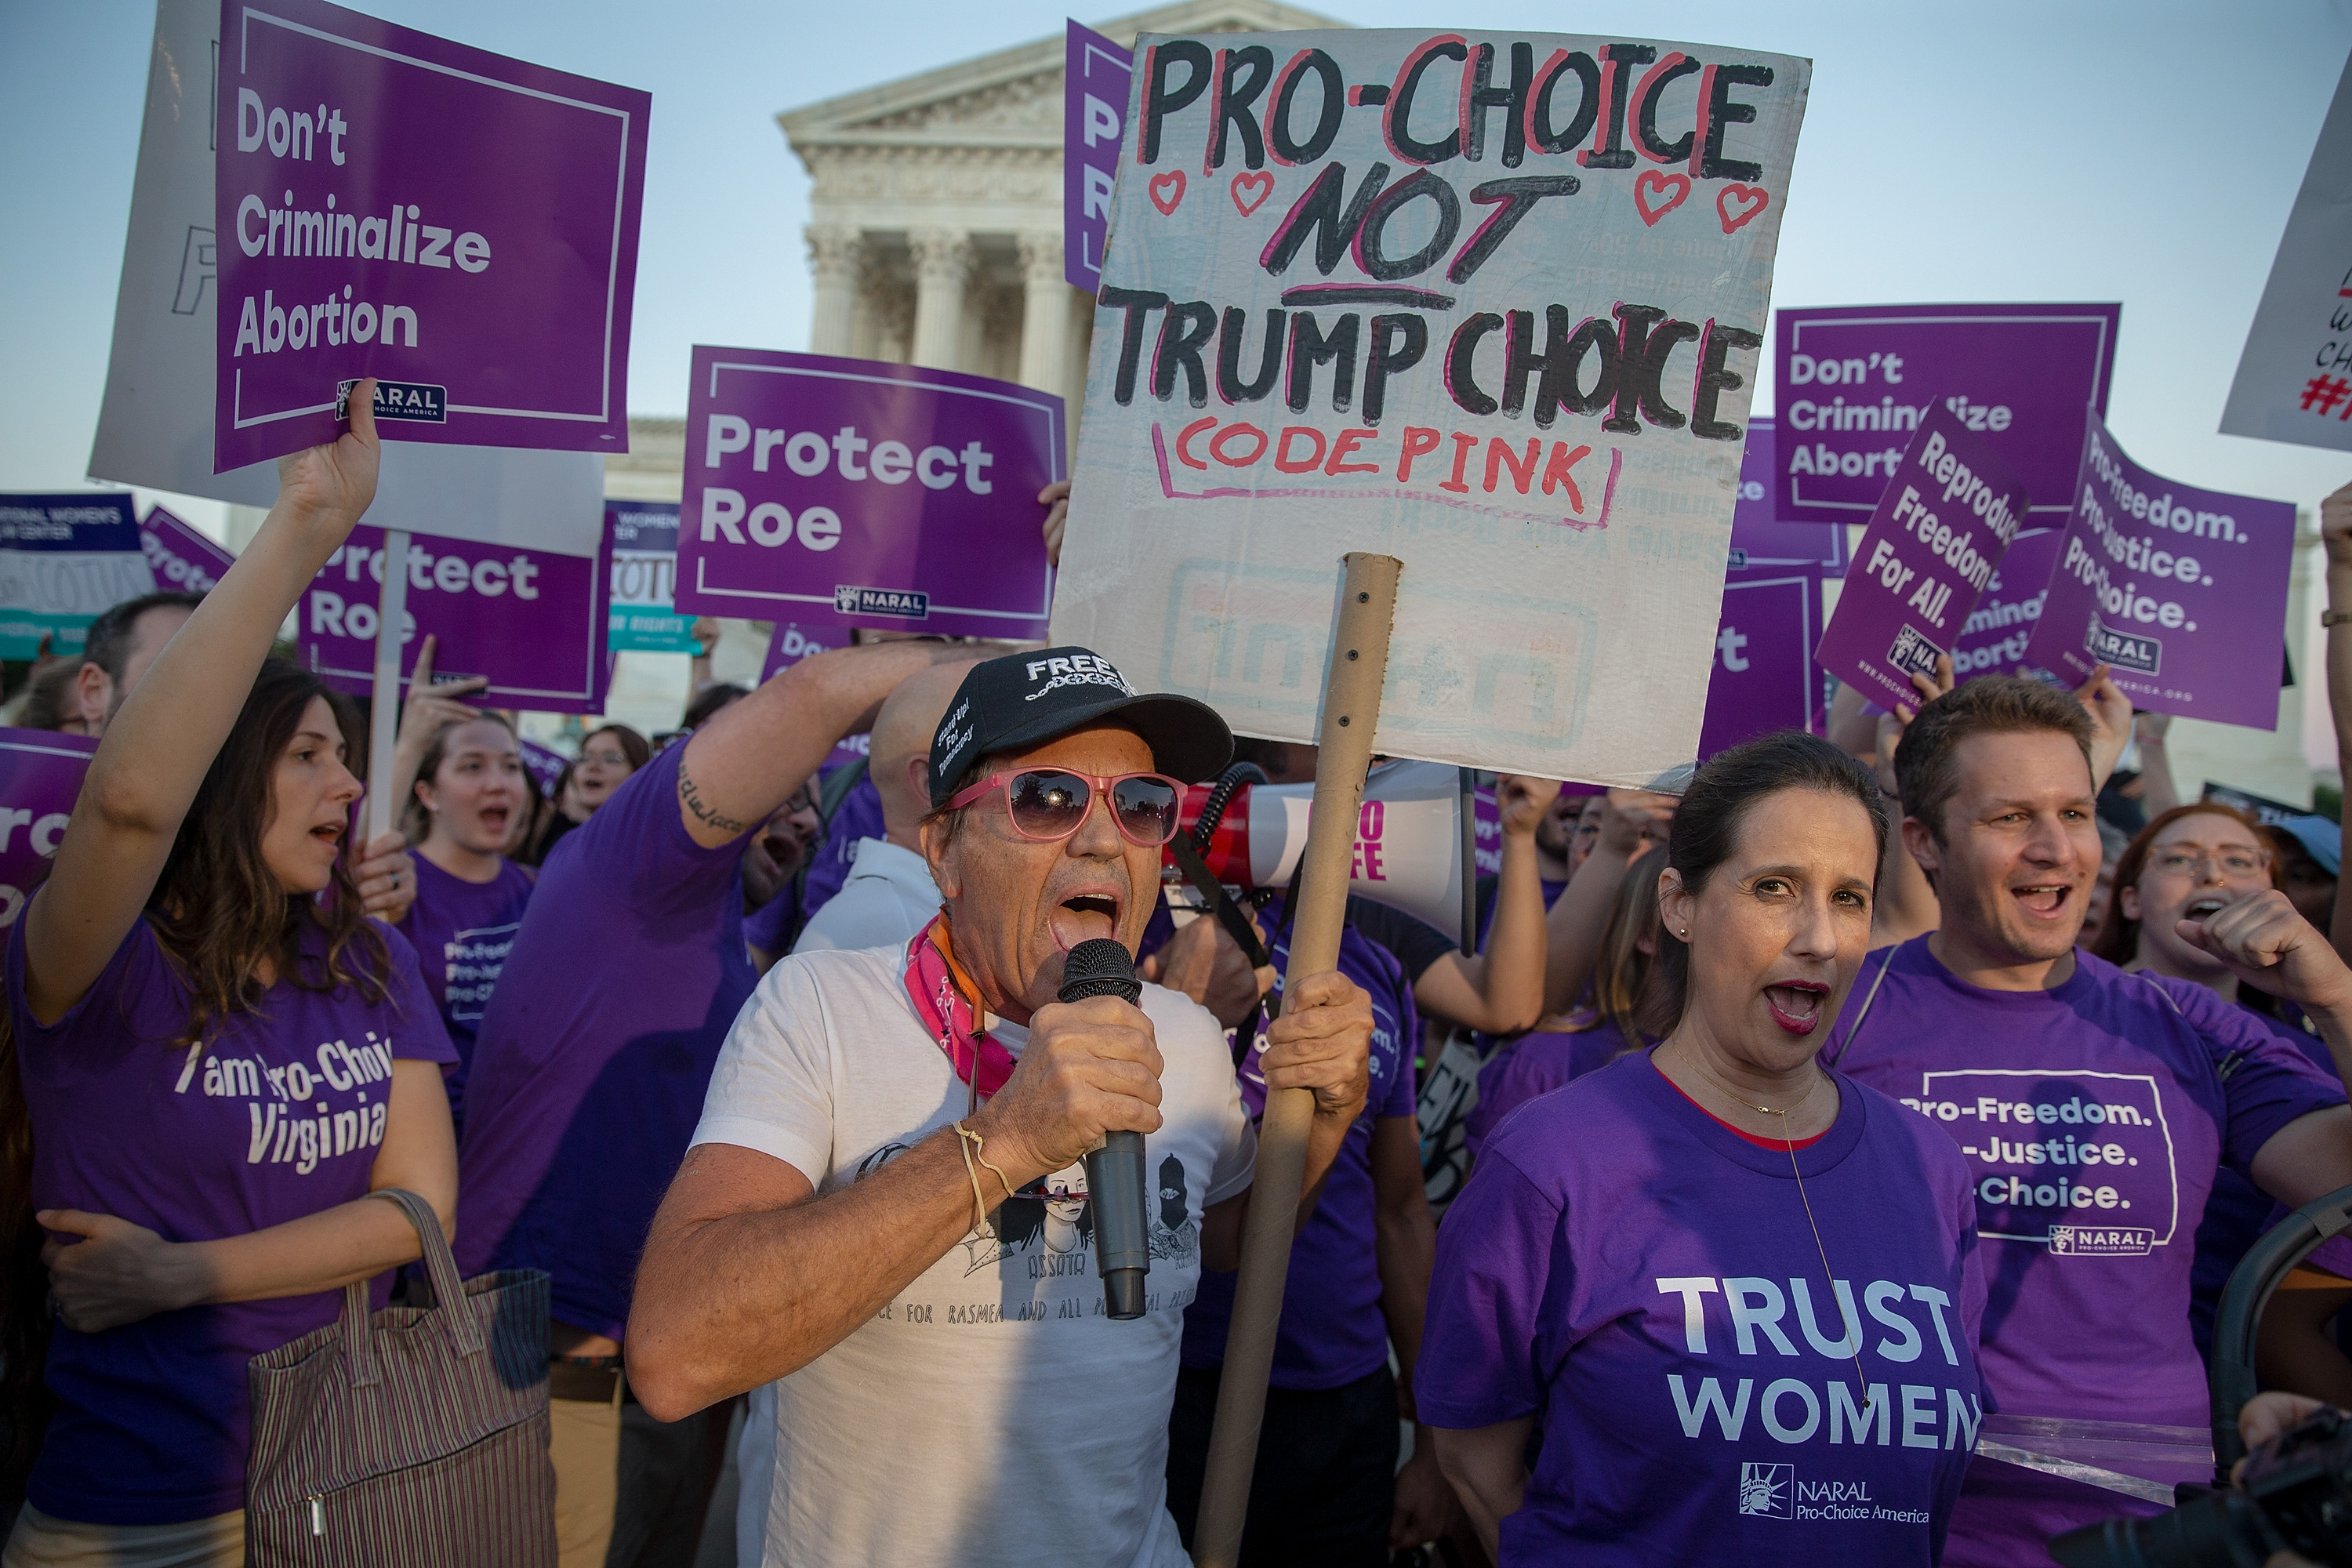 Pro-choice and anti-abortion protesters demonstrate in front of the US Supreme Court on Monday